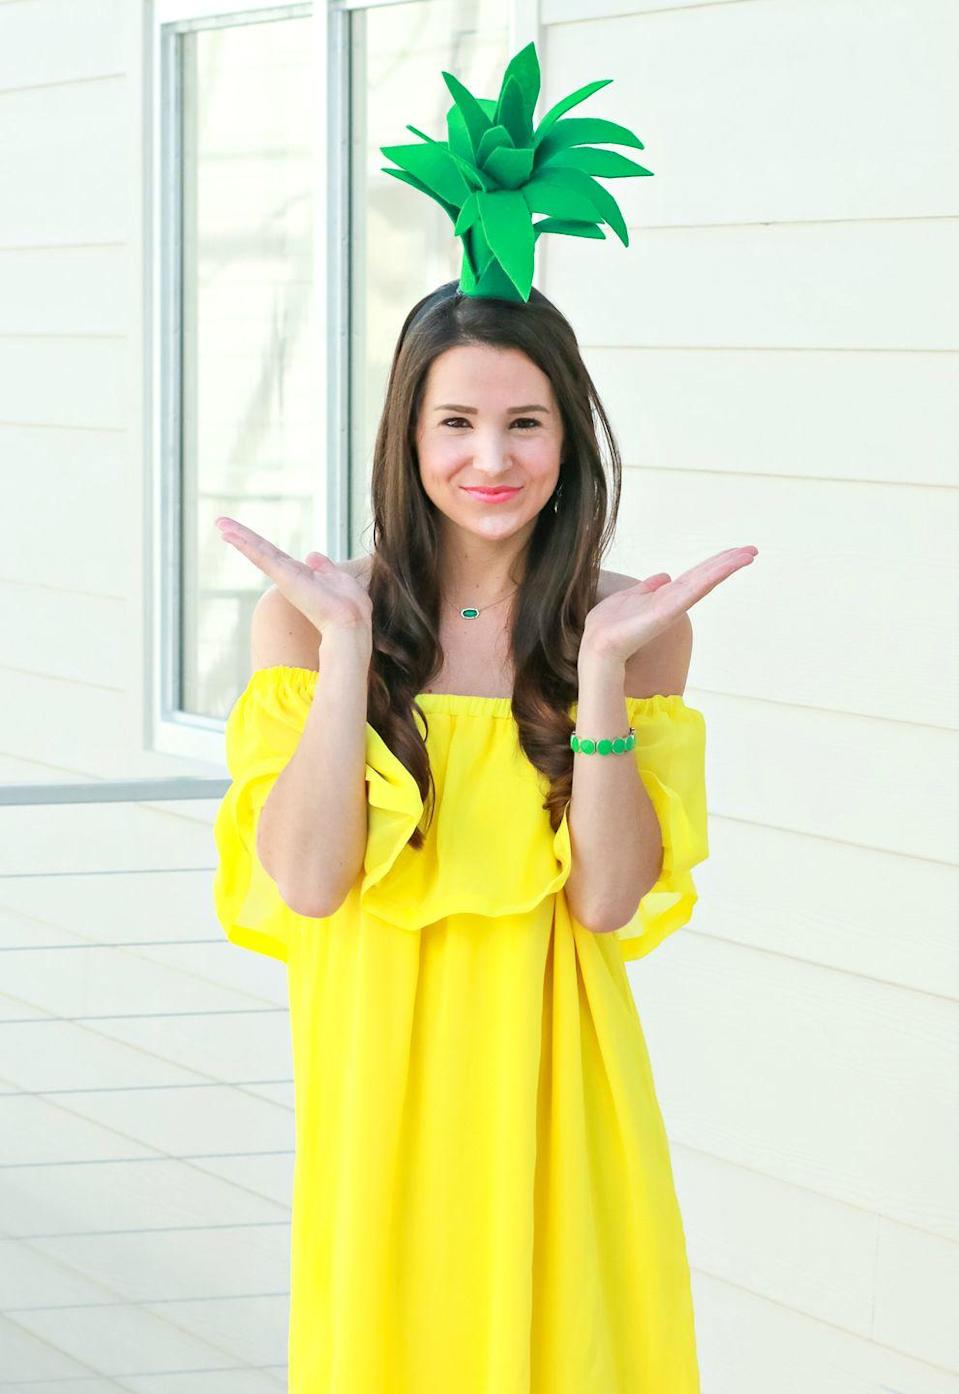 """<p>Make this budget-friendly outfit the pineapple of your eye on October 31. </p><p><strong>Get the tutorial at <a href=""""https://thediaryofadebutante.com/diy-pineapple-costume/"""" rel=""""nofollow noopener"""" target=""""_blank"""" data-ylk=""""slk:Diary of a Debutante"""" class=""""link rapid-noclick-resp"""">Diary of a Debutante</a>. </strong></p><p><strong><a class=""""link rapid-noclick-resp"""" href=""""https://www.amazon.com/Emerald-Green-Acrylic-Craft-Felt/dp/B001AQ9H98/?tag=syn-yahoo-20&ascsubtag=%5Bartid%7C10050.g.28181767%5Bsrc%7Cyahoo-us"""" rel=""""nofollow noopener"""" target=""""_blank"""" data-ylk=""""slk:SHOP GREEN FELT"""">SHOP GREEN FELT</a><br></strong></p>"""